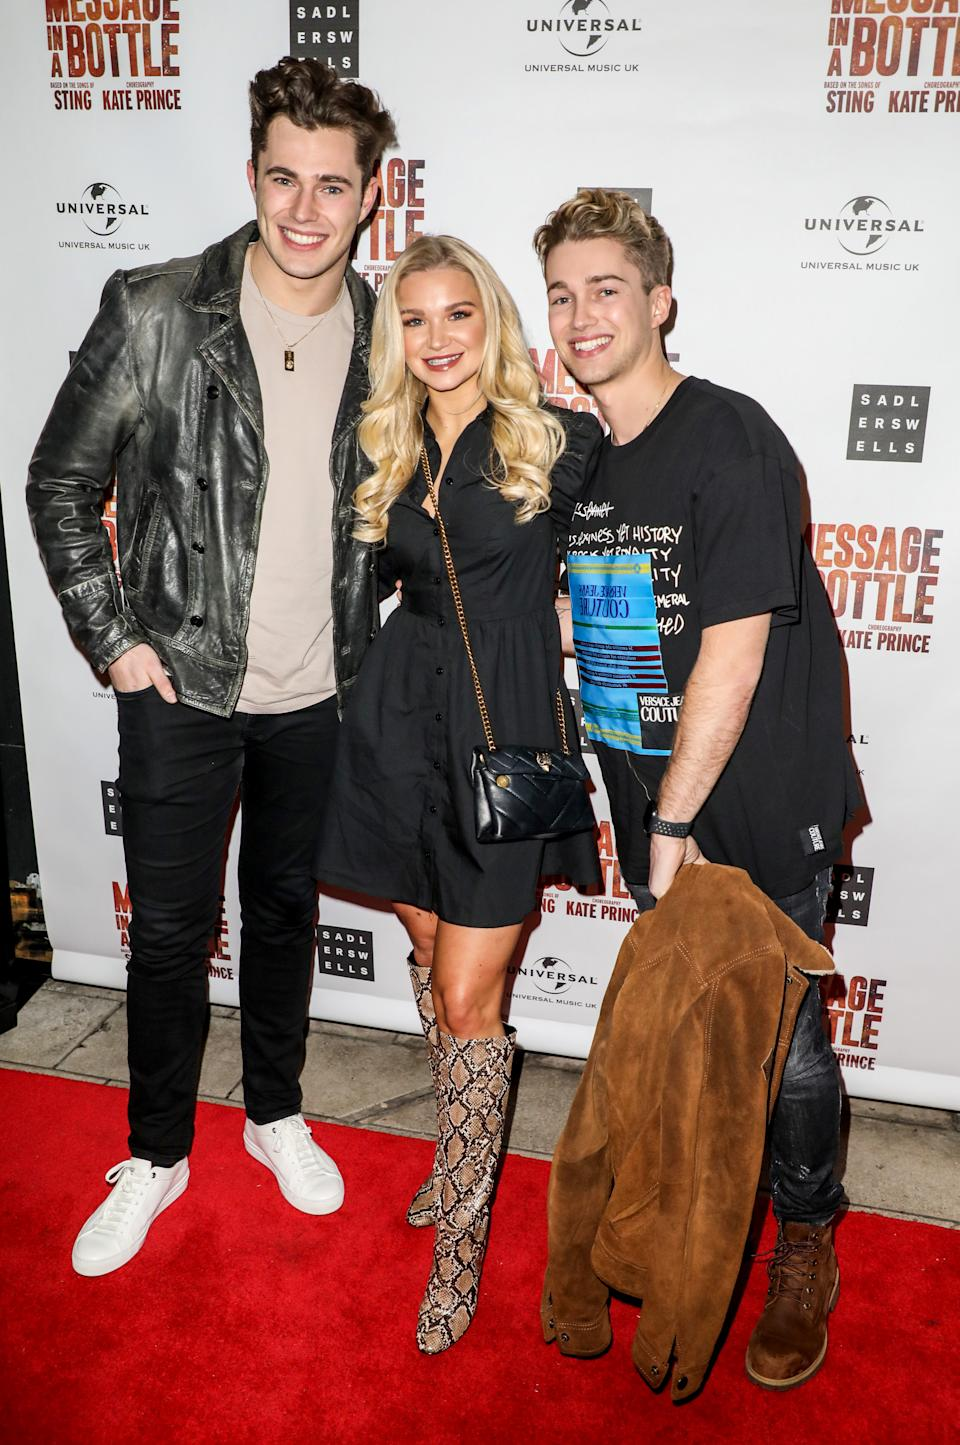 Curtis Pritchard, Abbie Quinnen and AJ Pritchard attending a press night for Message in a Bottle at the Peacock Theatre in London (Photo by Brett Cove / SOPA Images/Sipa USA)